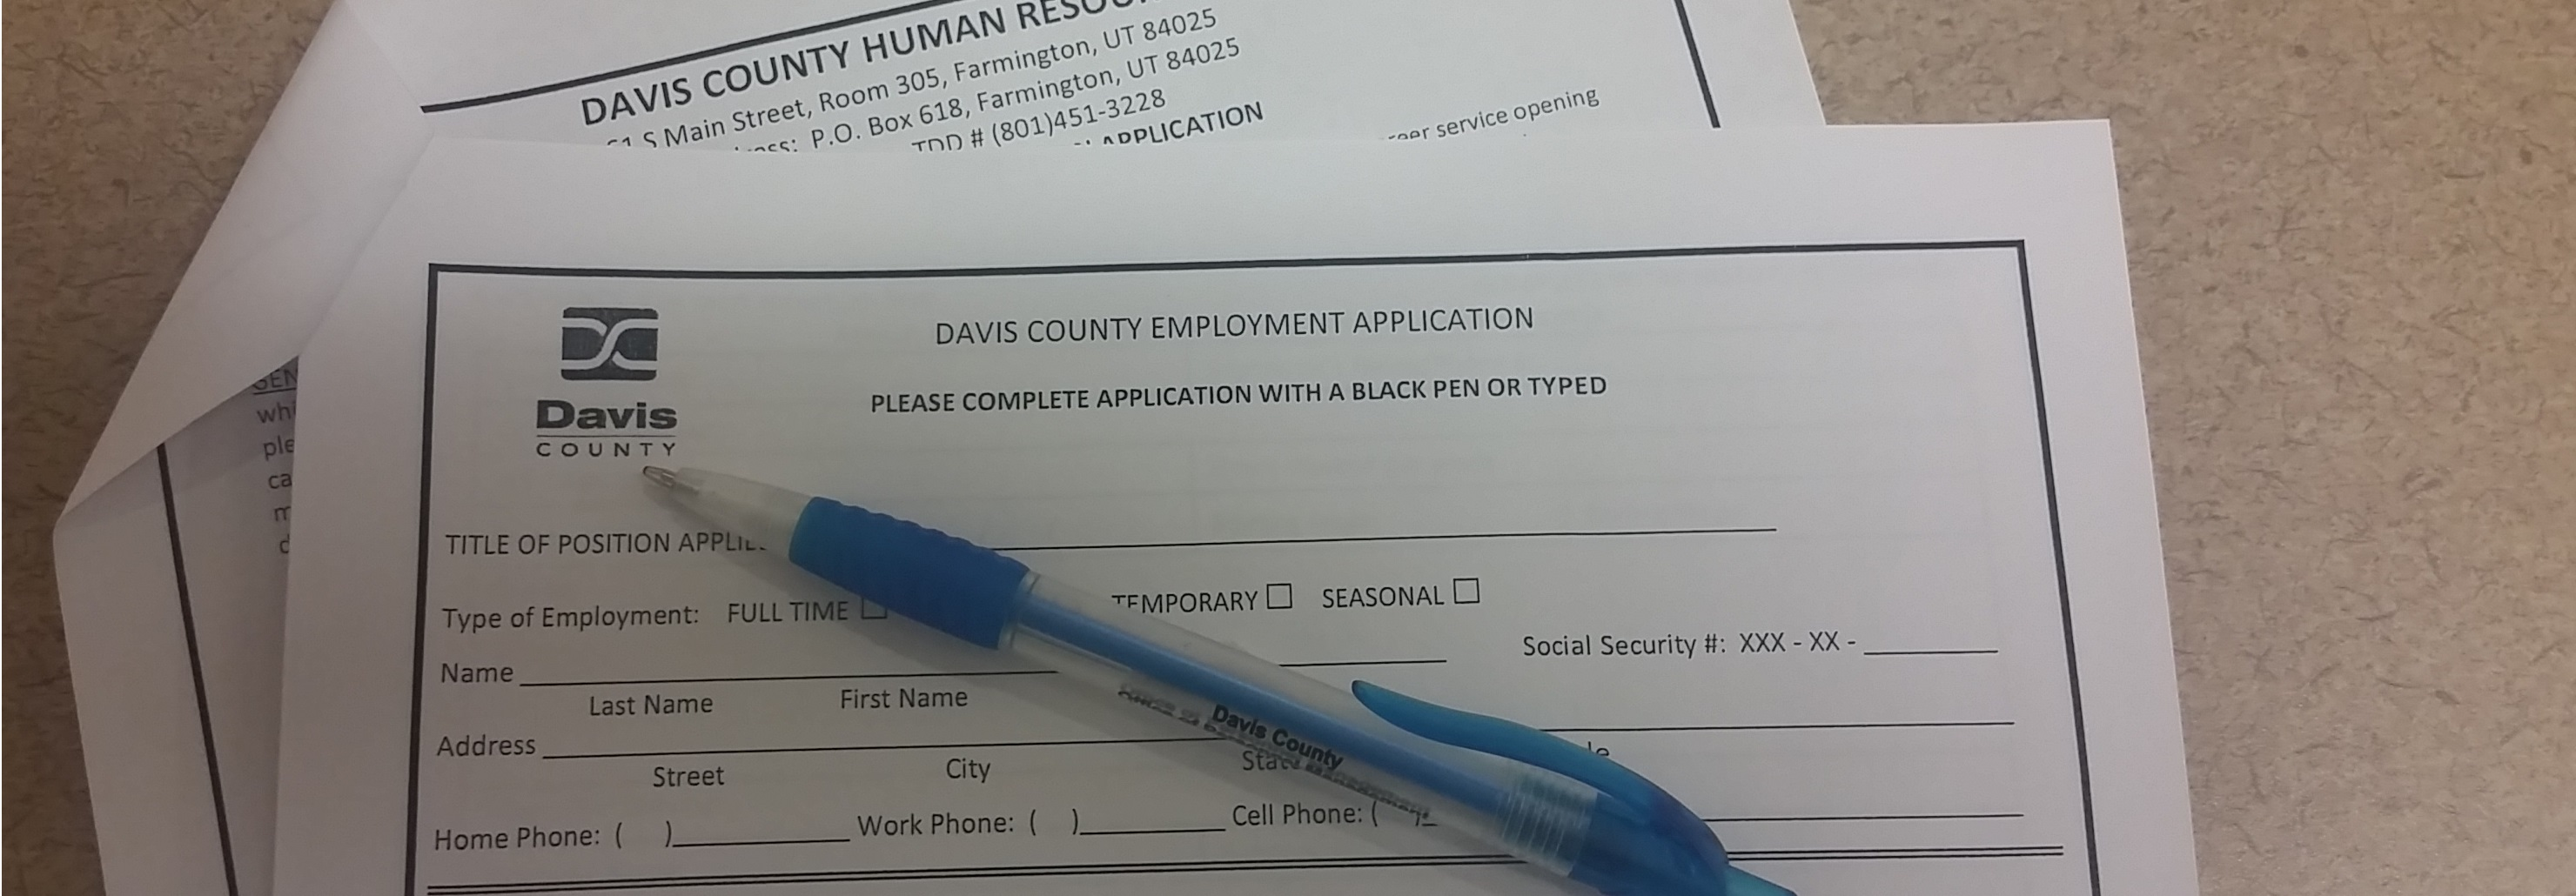 Davis County Employment Application